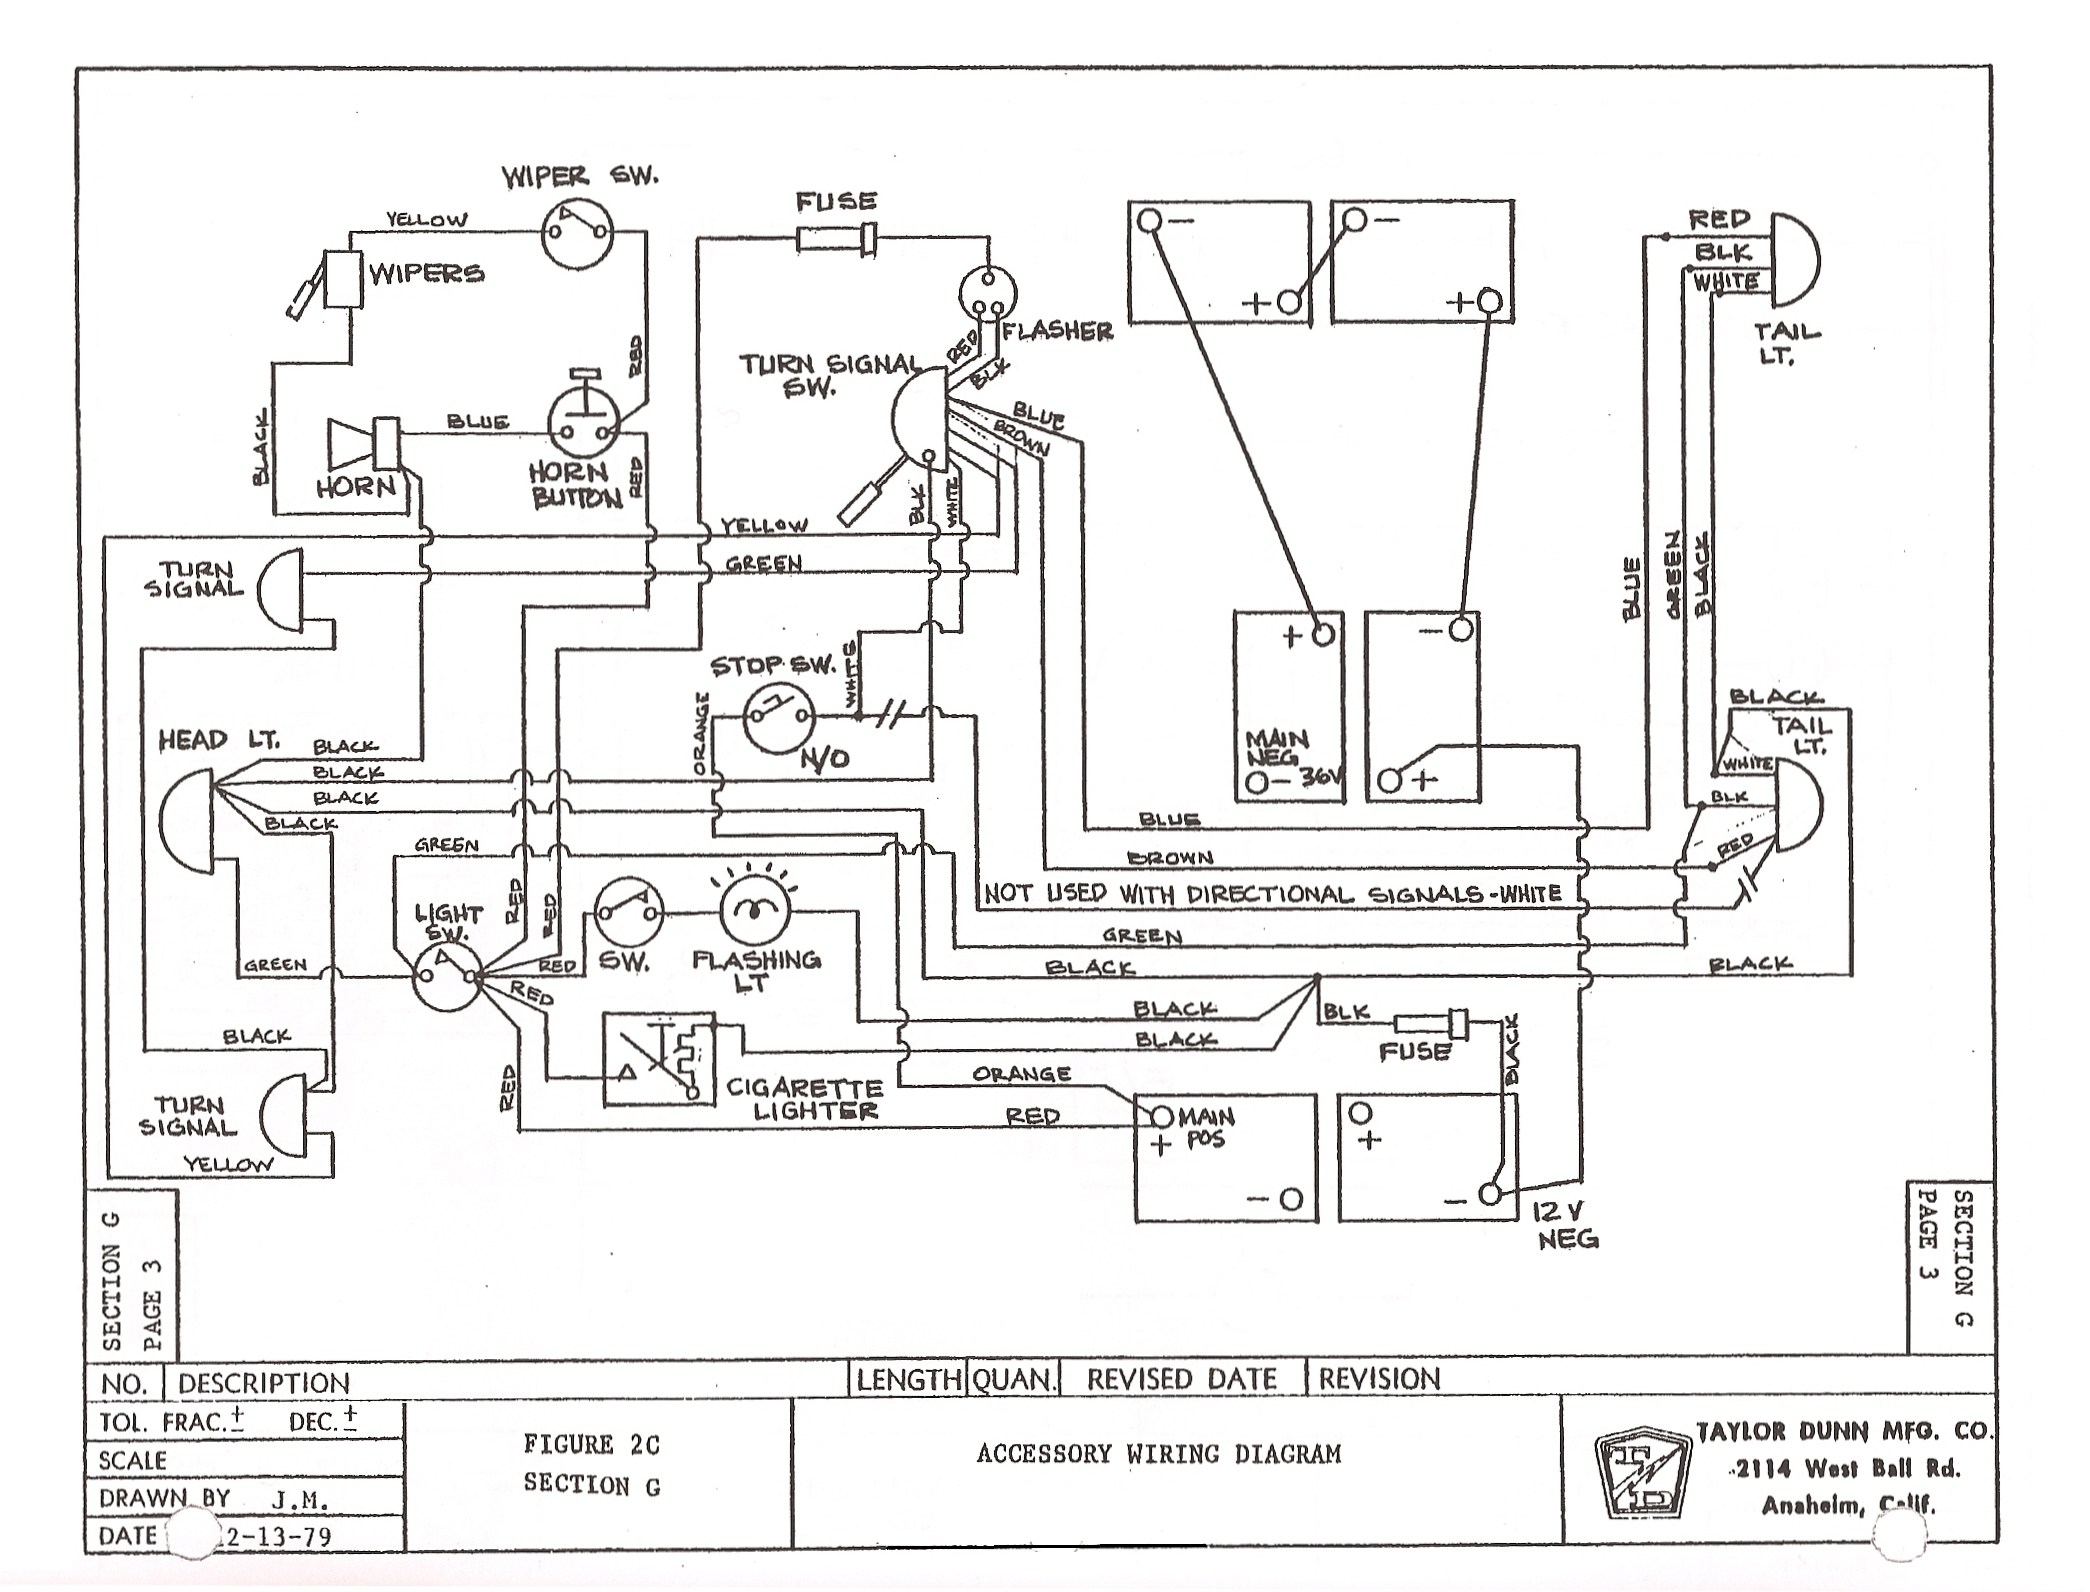 wiring diagram 1999 ezgo golf cart get free image about wiring diagram EZ  Go Solenoid Wiring Diagram Ezgo Electric Golf Cart Wiring Diagram